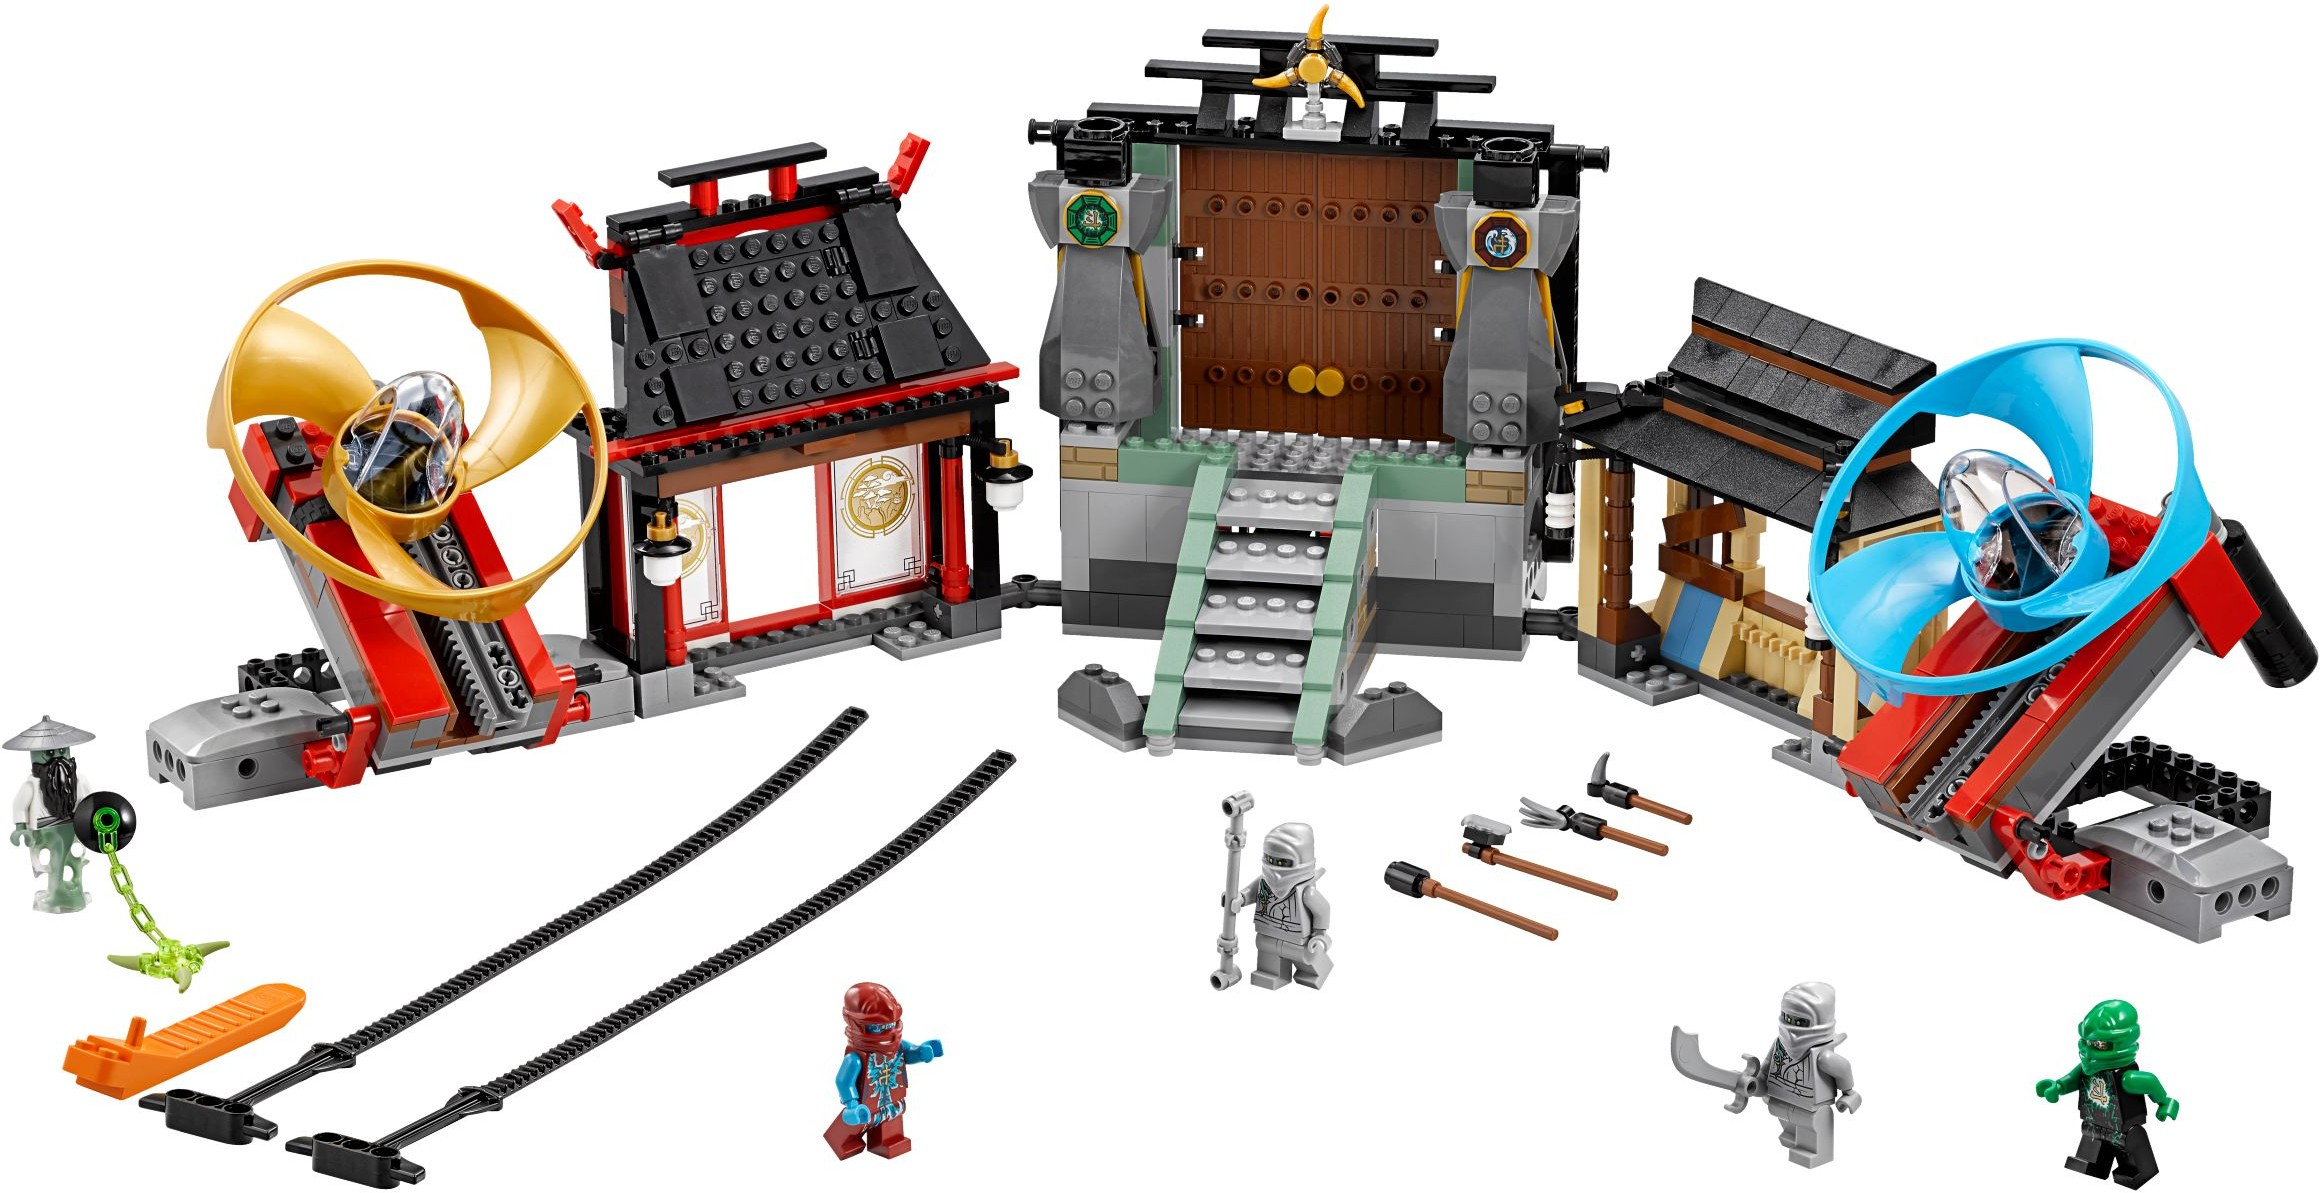 http://images.brickset.com/sets/large/70590-1.jpg?201605200733